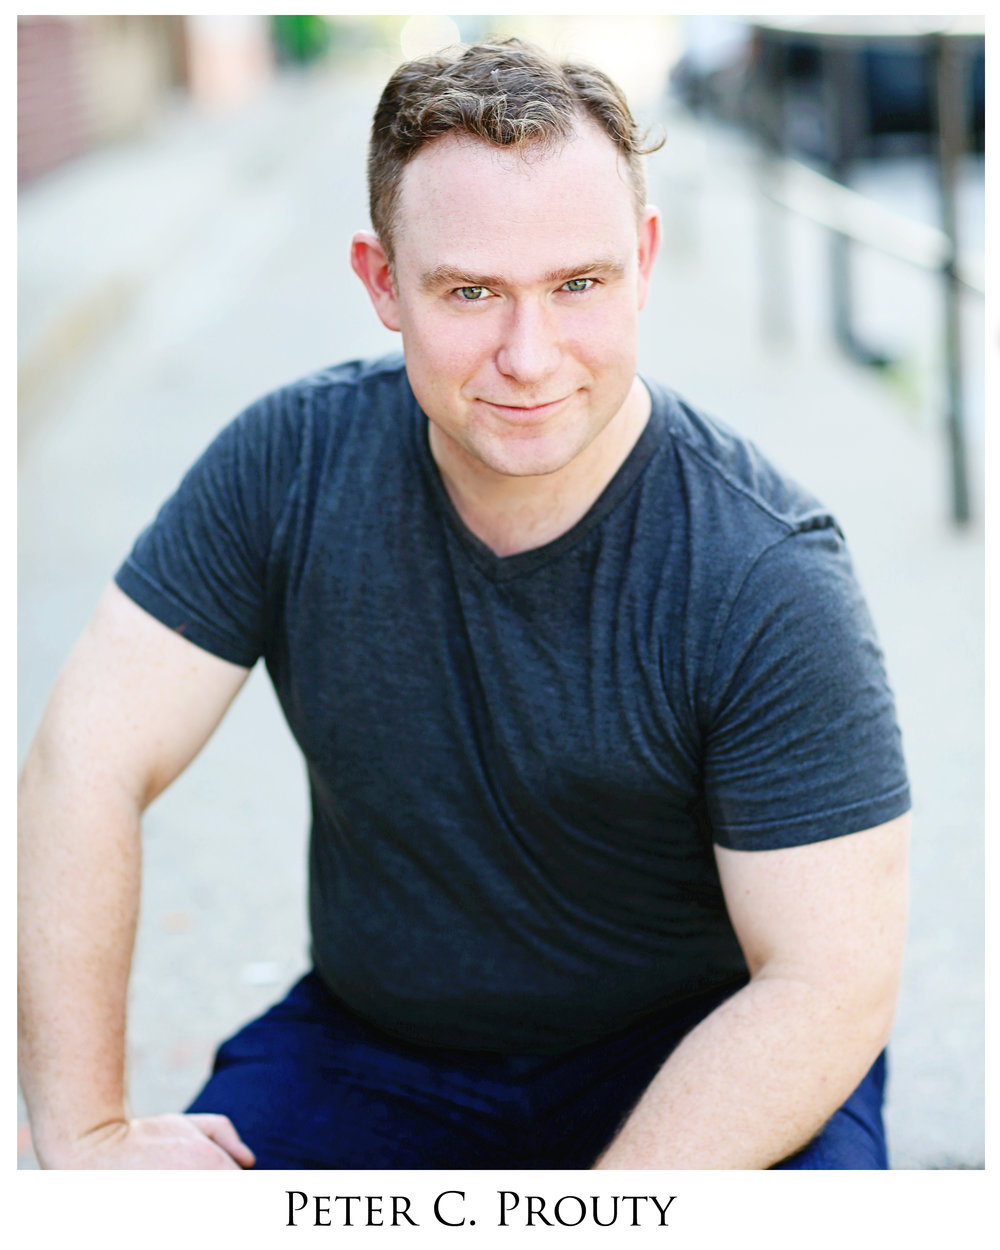 Peter Prouty* (Actor One) is very excited to return to the Meadow Brook stage. He attended both University of Detroit Mercy and Wayne State University's Hilberry theatre programs. He has studied abroad in Greece and Russia. Previous MBT credits include Bellievre/Mary Stuart,  Luke/Haunting of Hill House, Mark/White's Lies, as well as 16 different characters in Around the World in 80 Days. Love to his family and his Hildy.